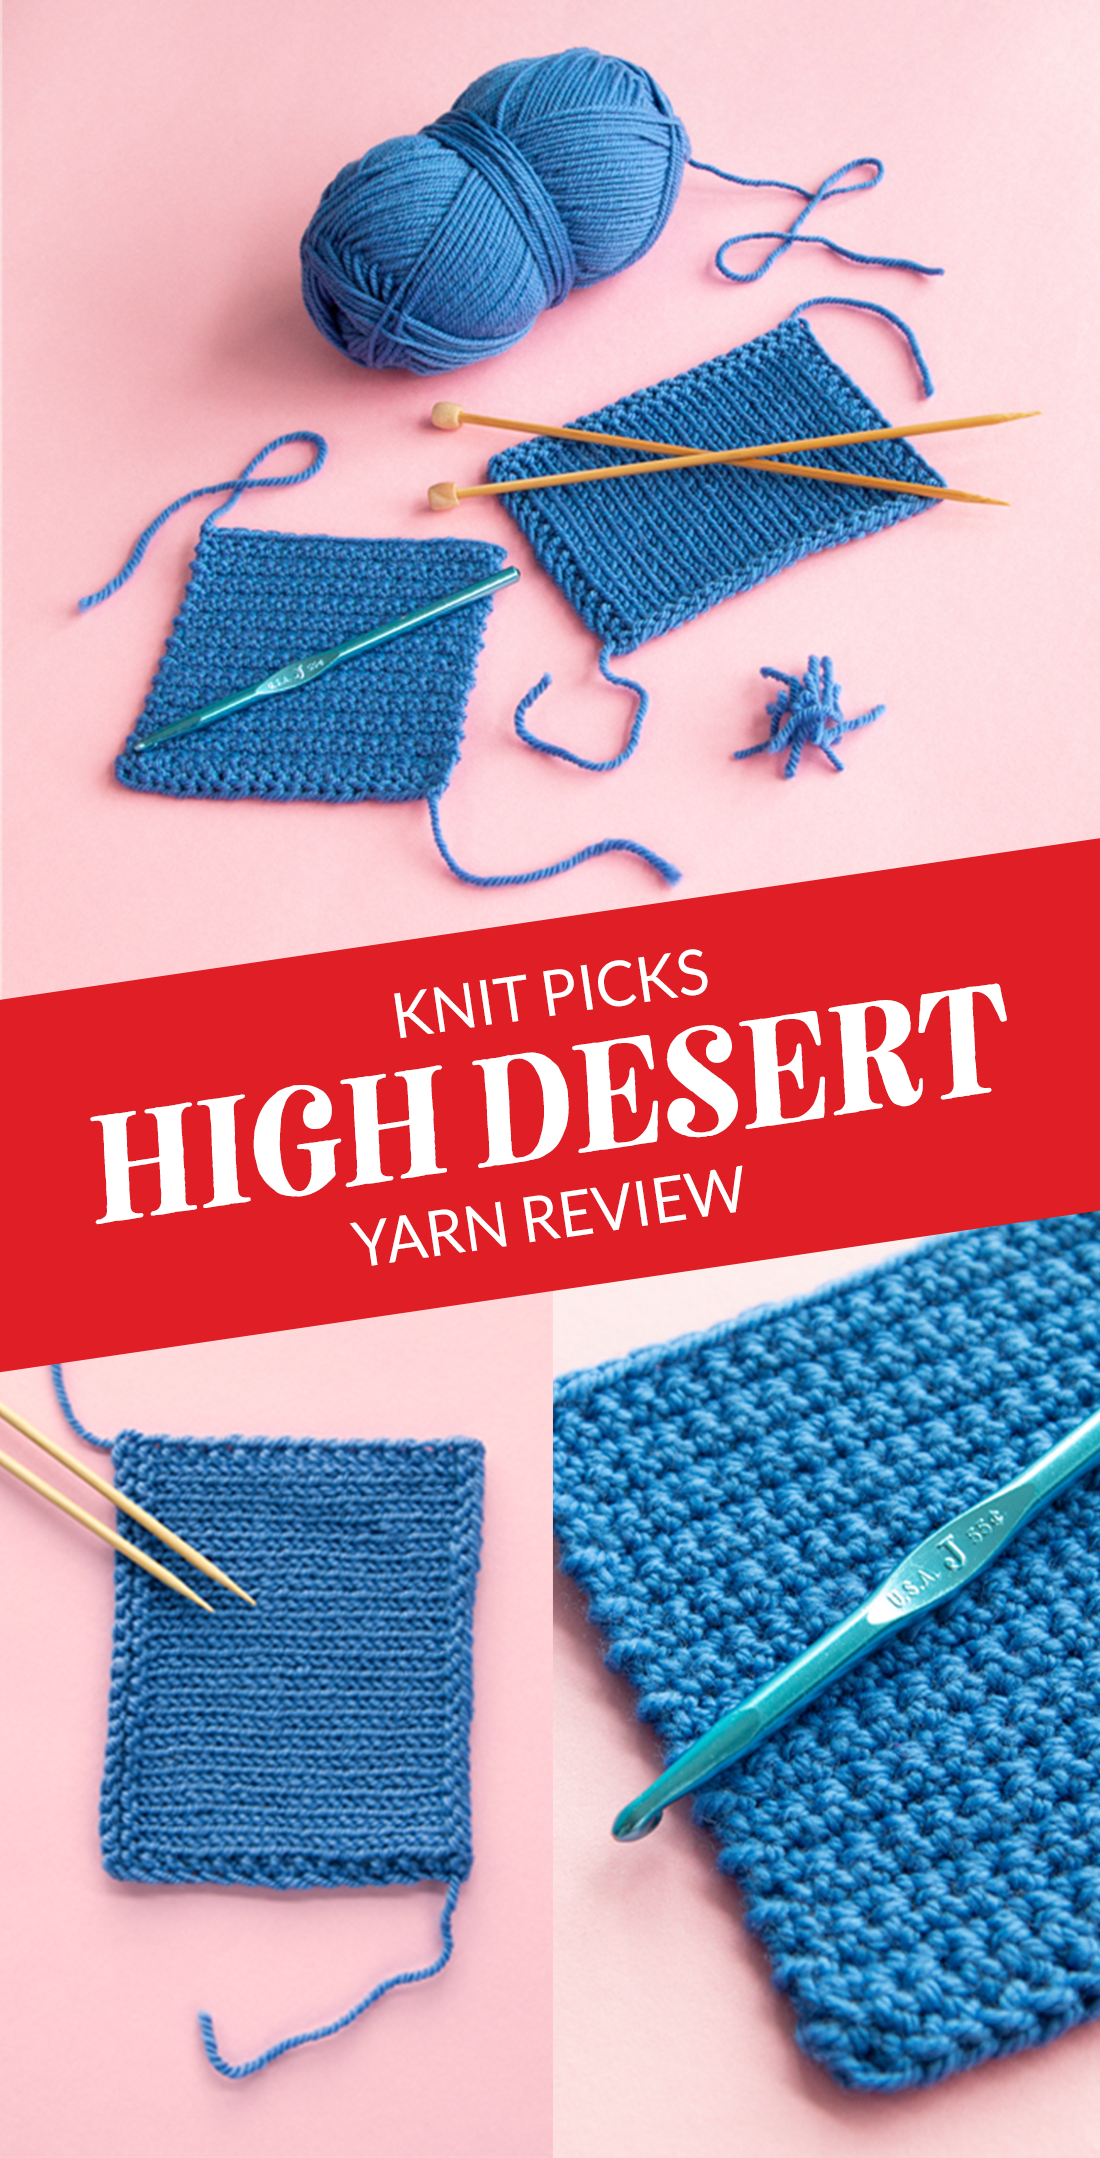 Knit Picks High Desert is a new yarn available in a range of jewel tone colors & two weights. Take a closer look at this versatile yarn that's 100% American from sheep to skein. #KPHighDesert2021 #sponsored